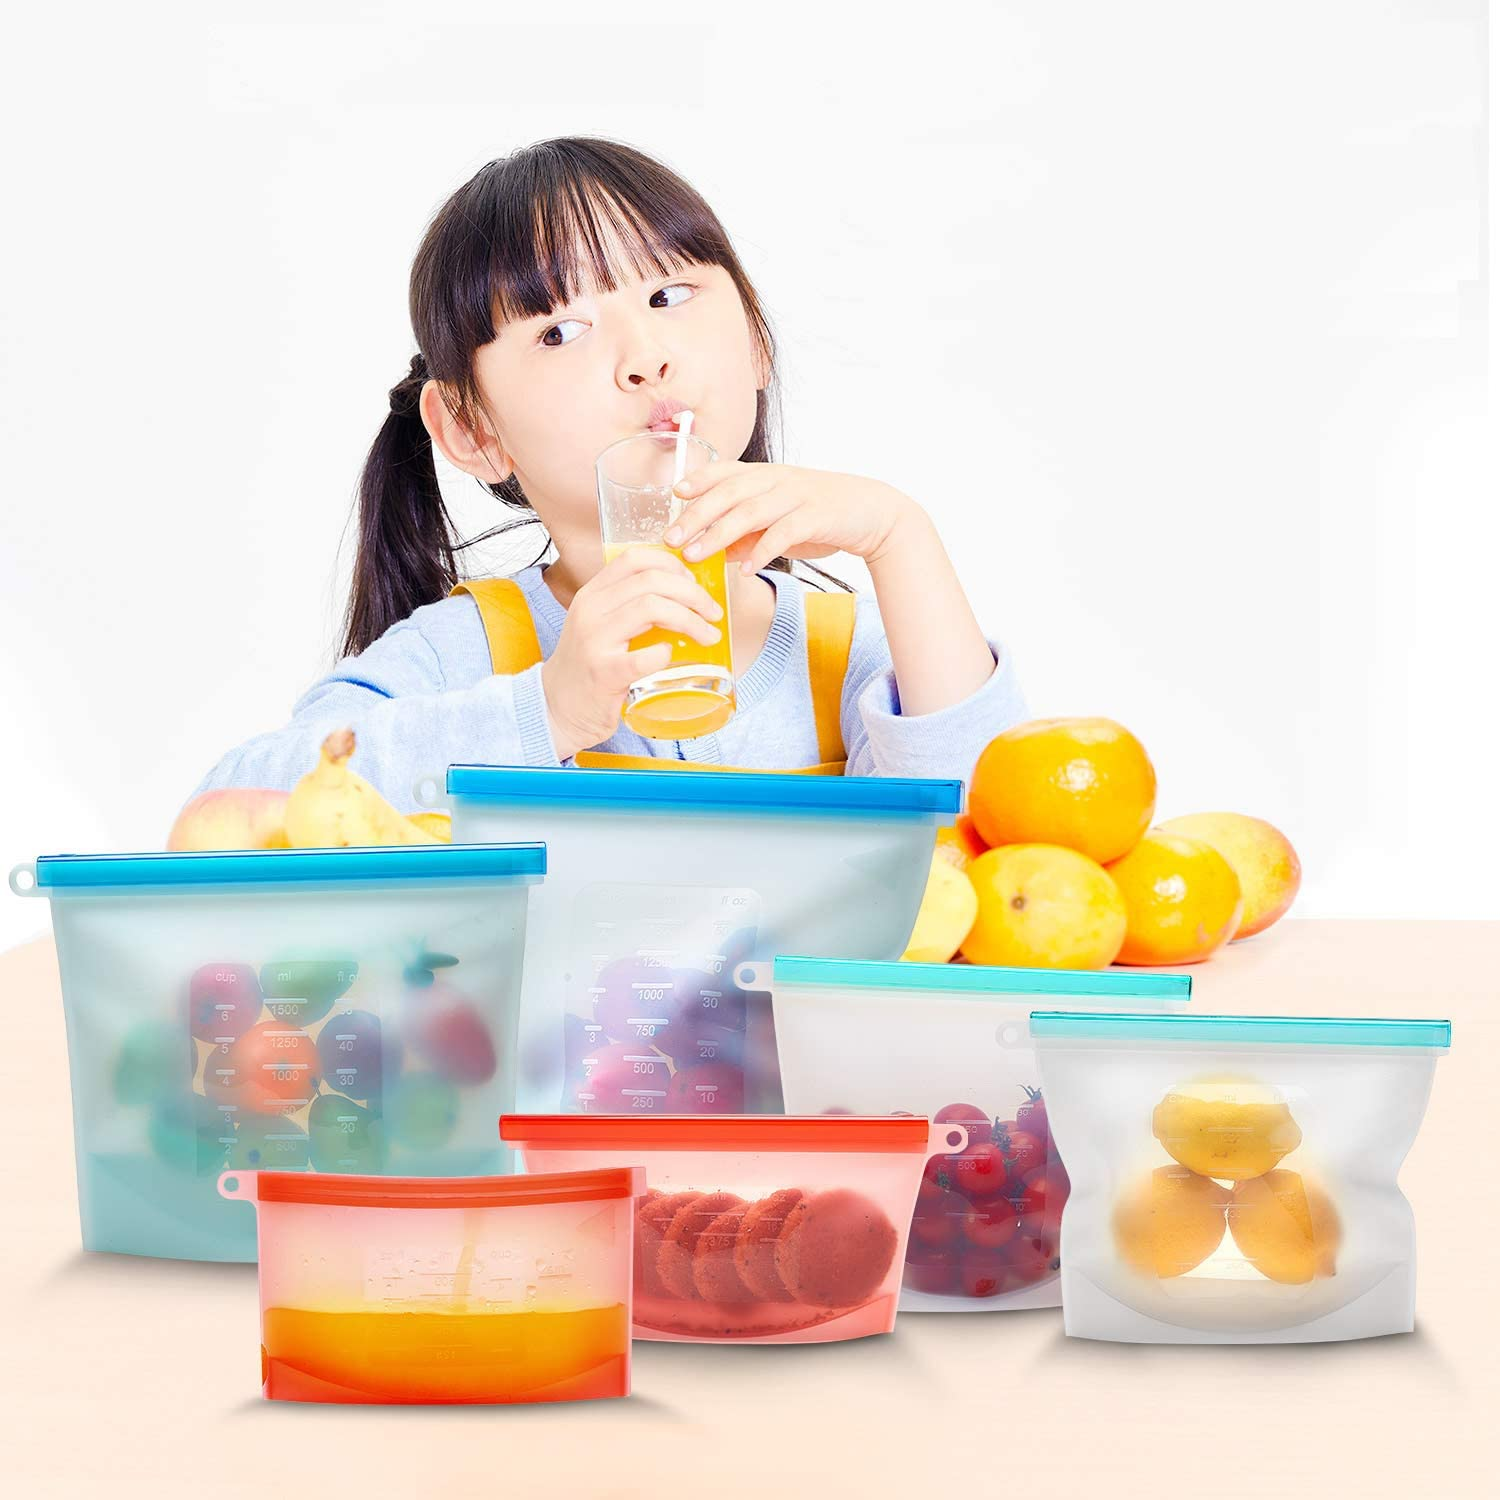 Reusable Silicone Food Storage Bags Airtight Seal Food Preservation Bag/Food Grade/Versatile Silicone bags for Fruit, Sandwich, Liquid, Snack, Meat, Vegetable   BEST for Preserving and Cooking